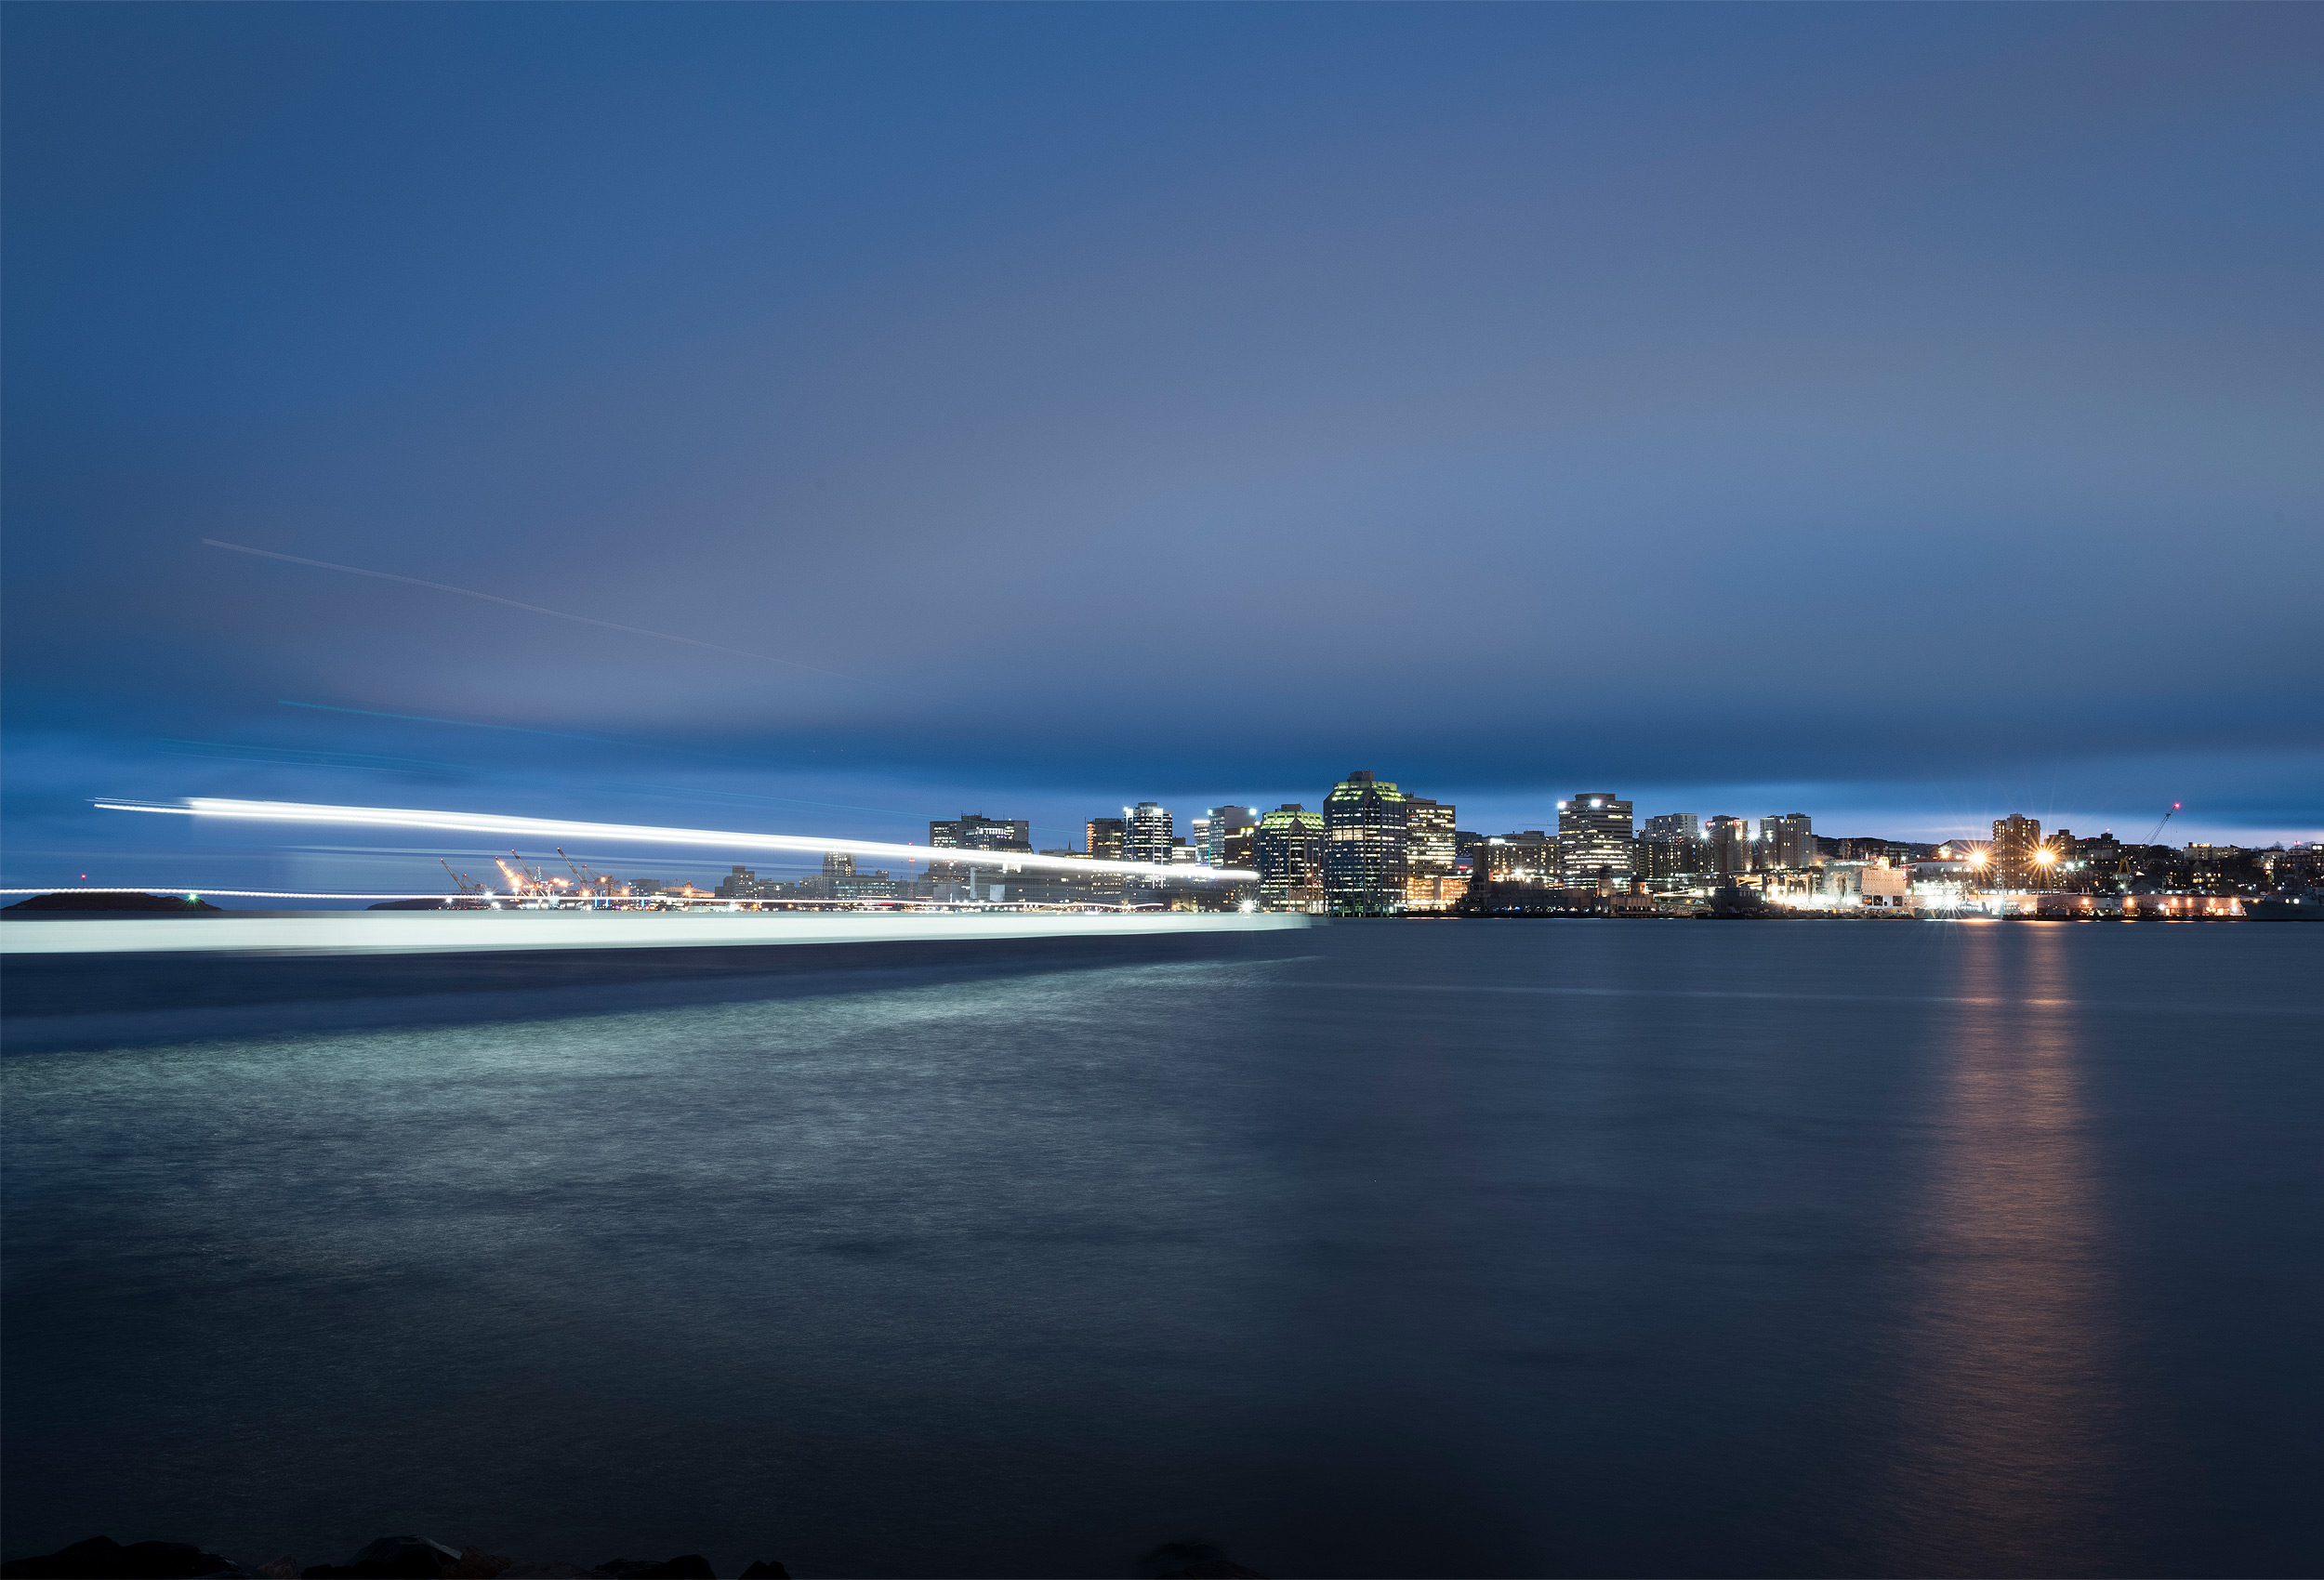 Halifax at night by cityscape photographer Kristopher Grunert